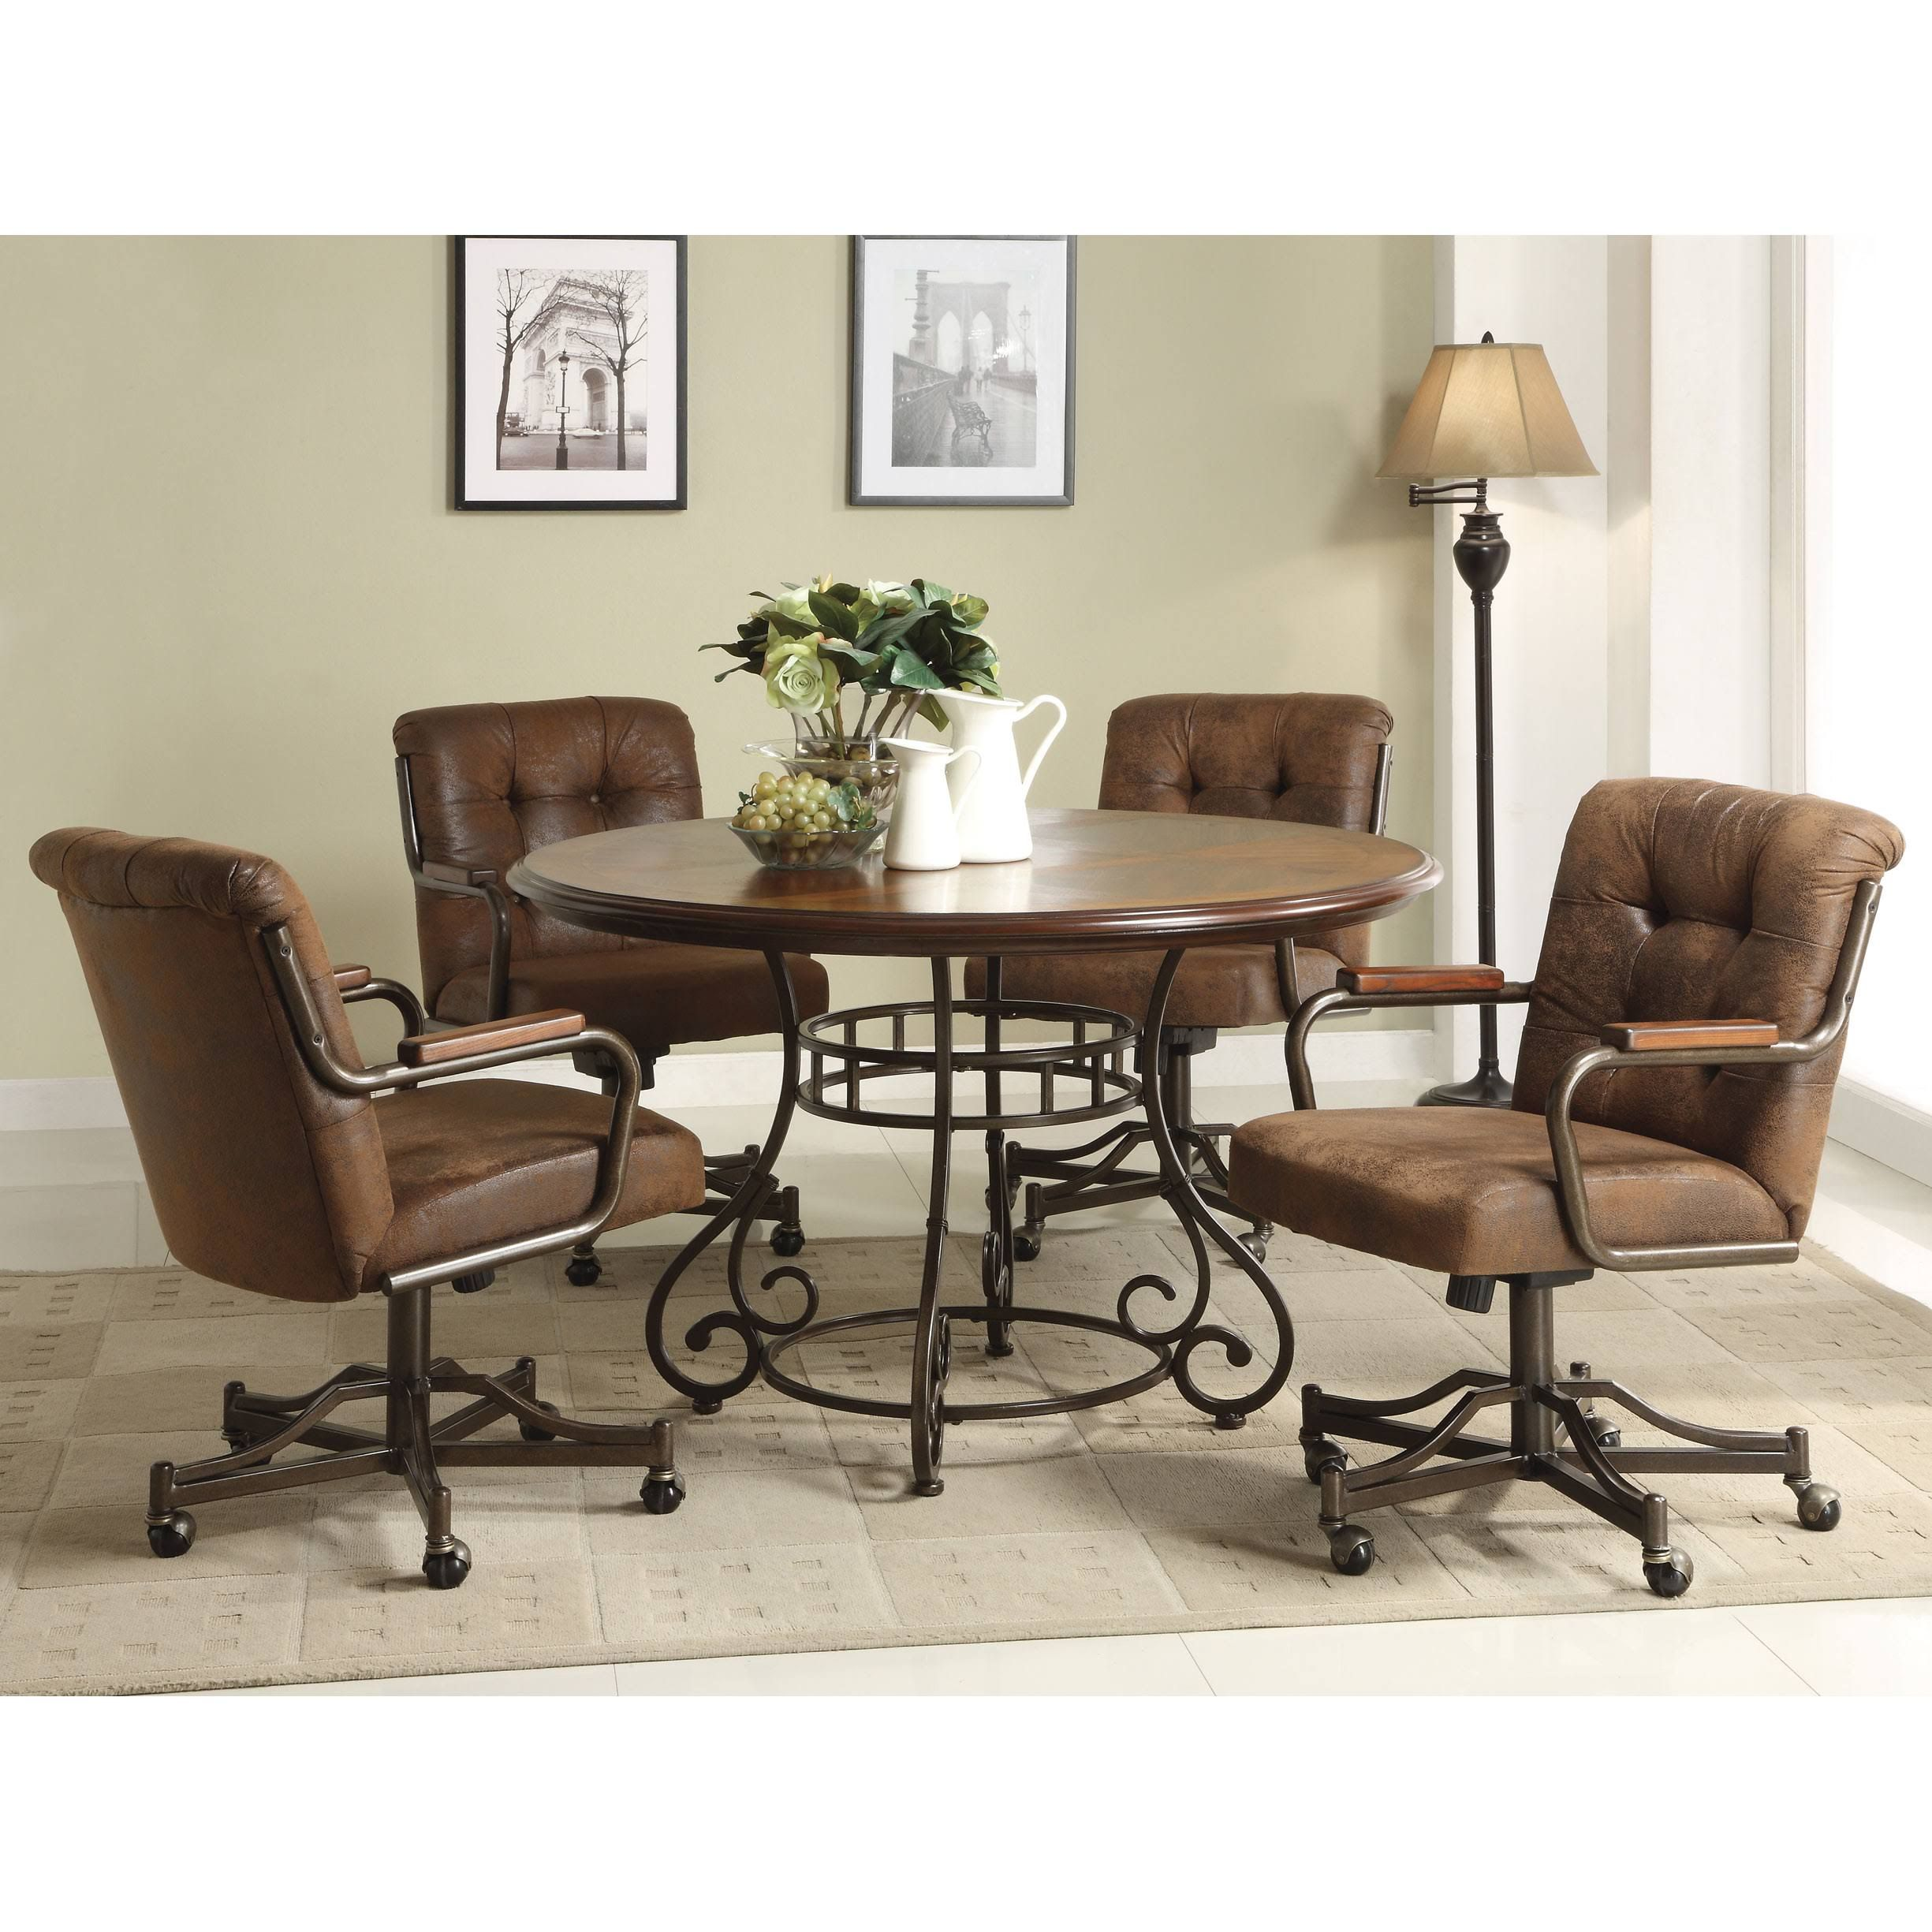 Anthony California 5 Pcs Wood Dining Table And Caster Chairs Set